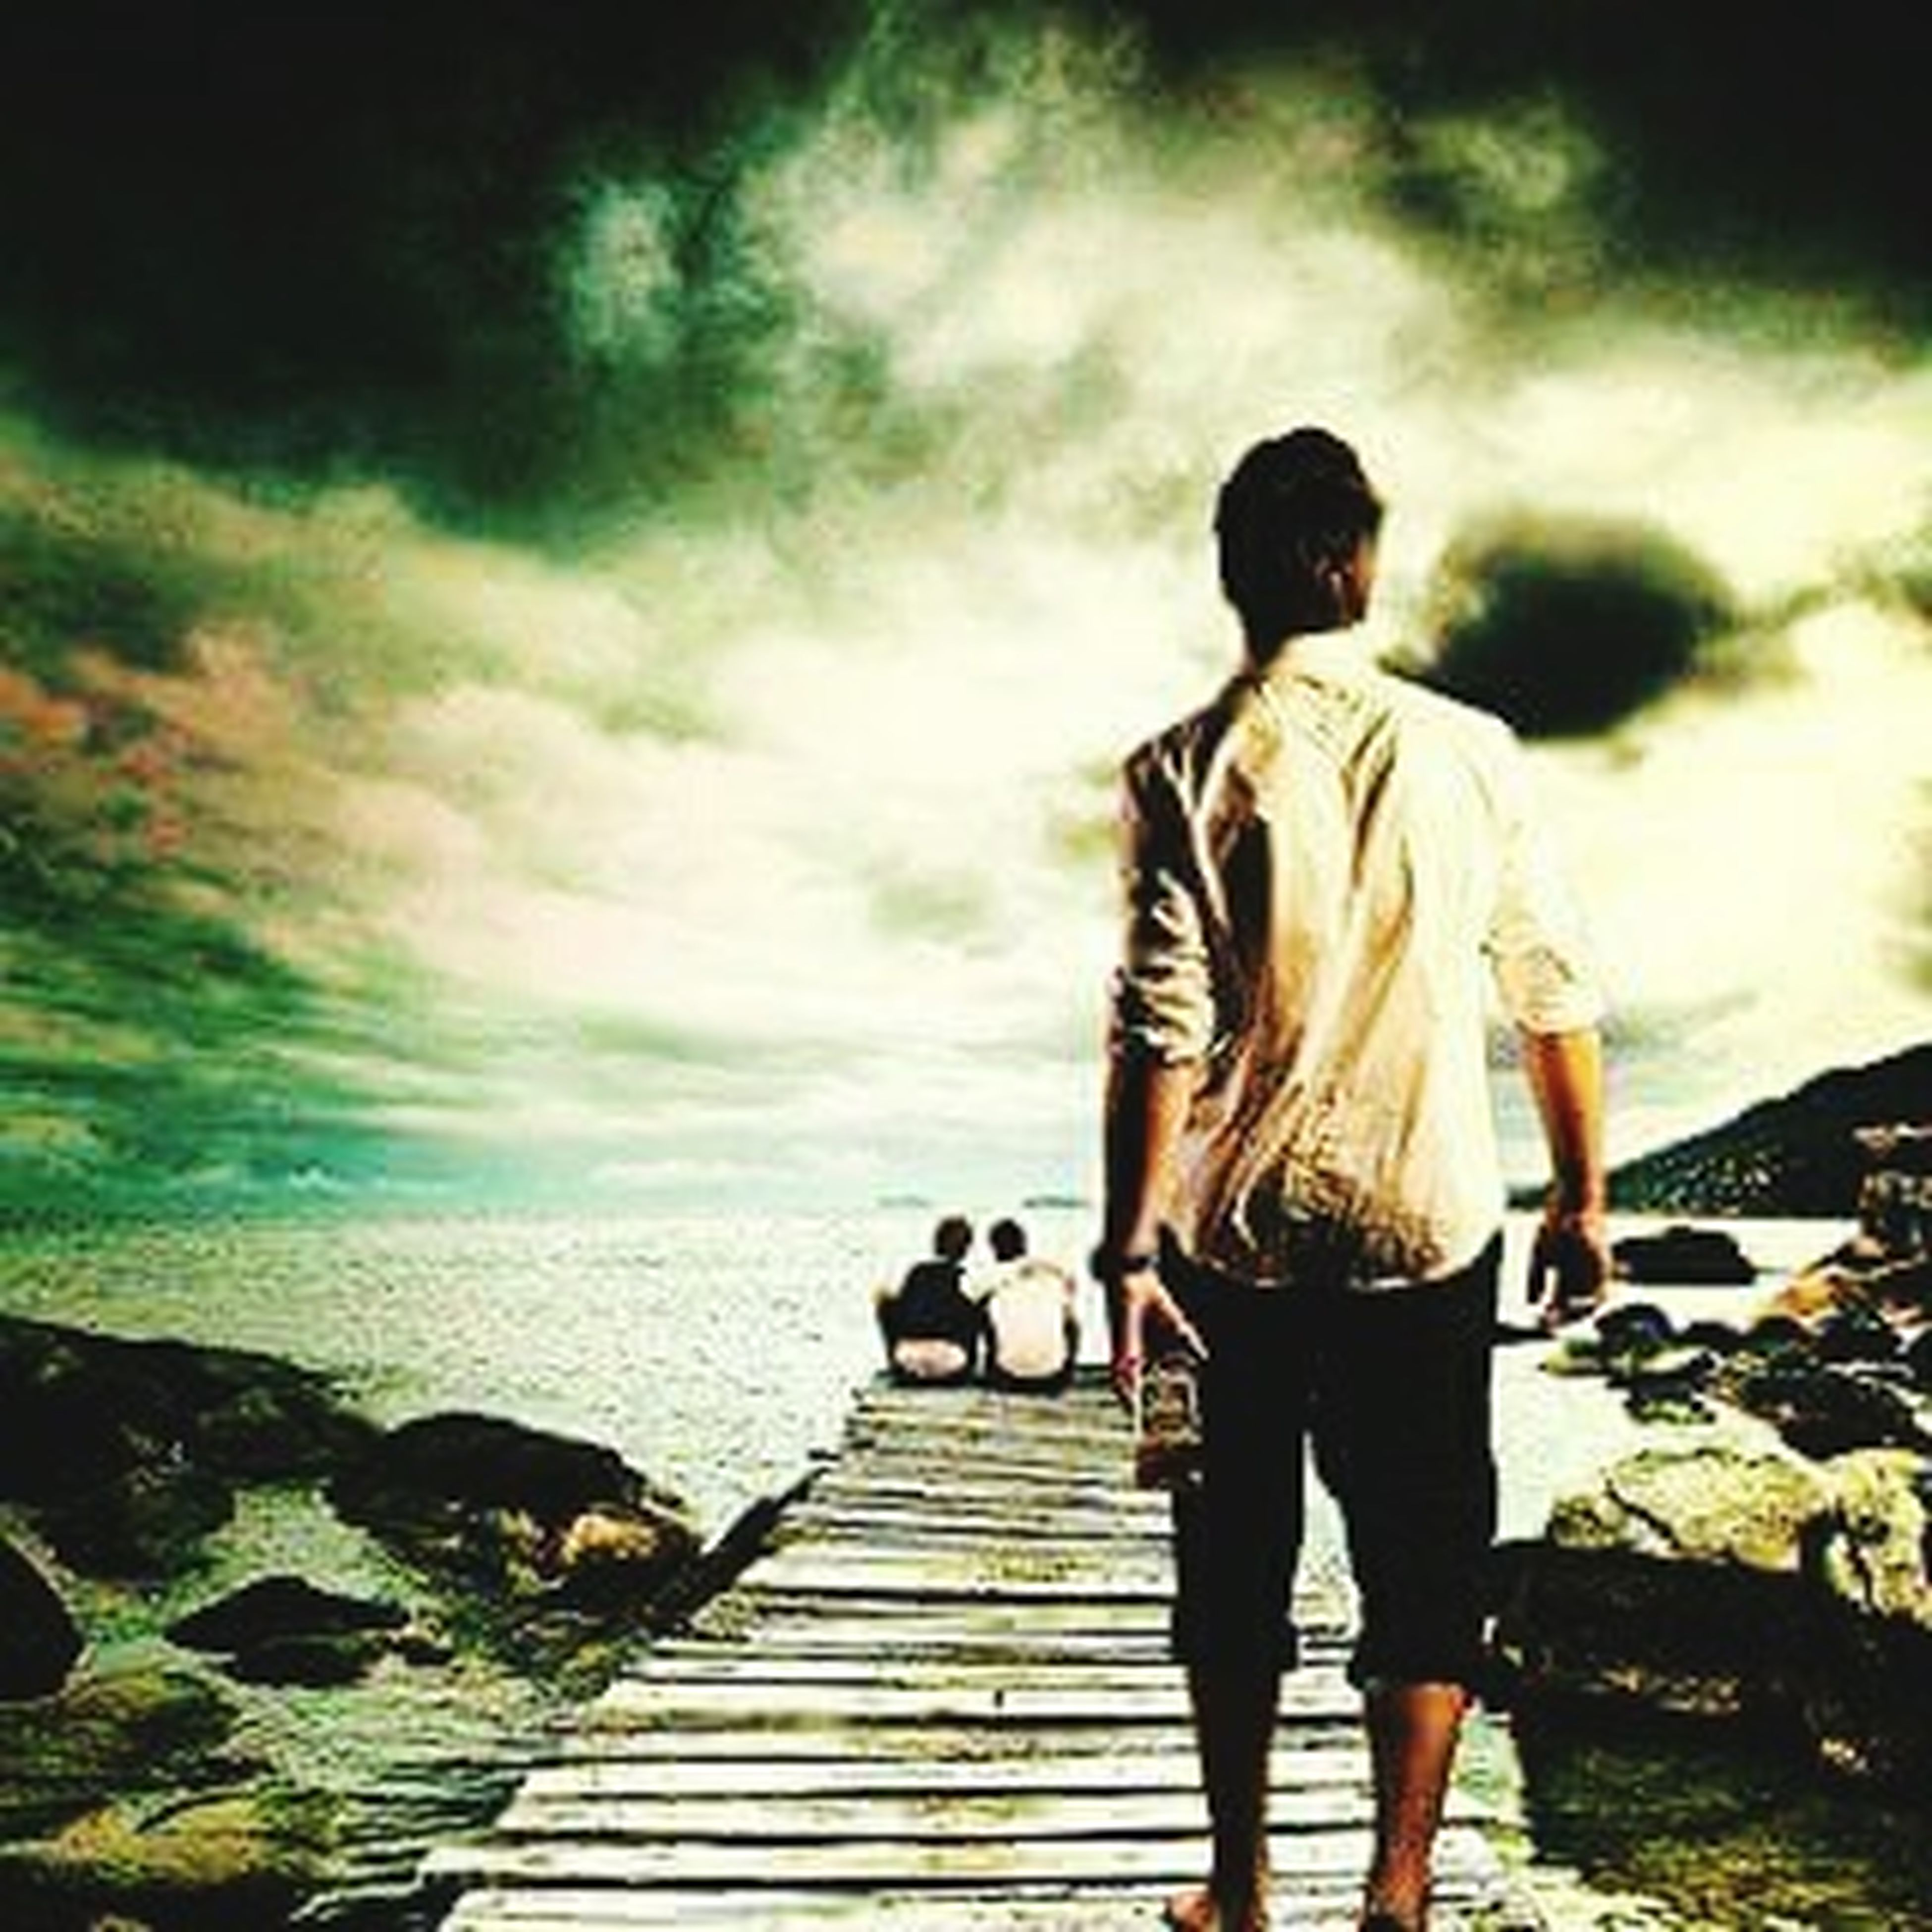 lifestyles, rear view, full length, sky, leisure activity, men, sea, standing, cloud - sky, water, casual clothing, togetherness, person, walking, cloud, nature, bonding